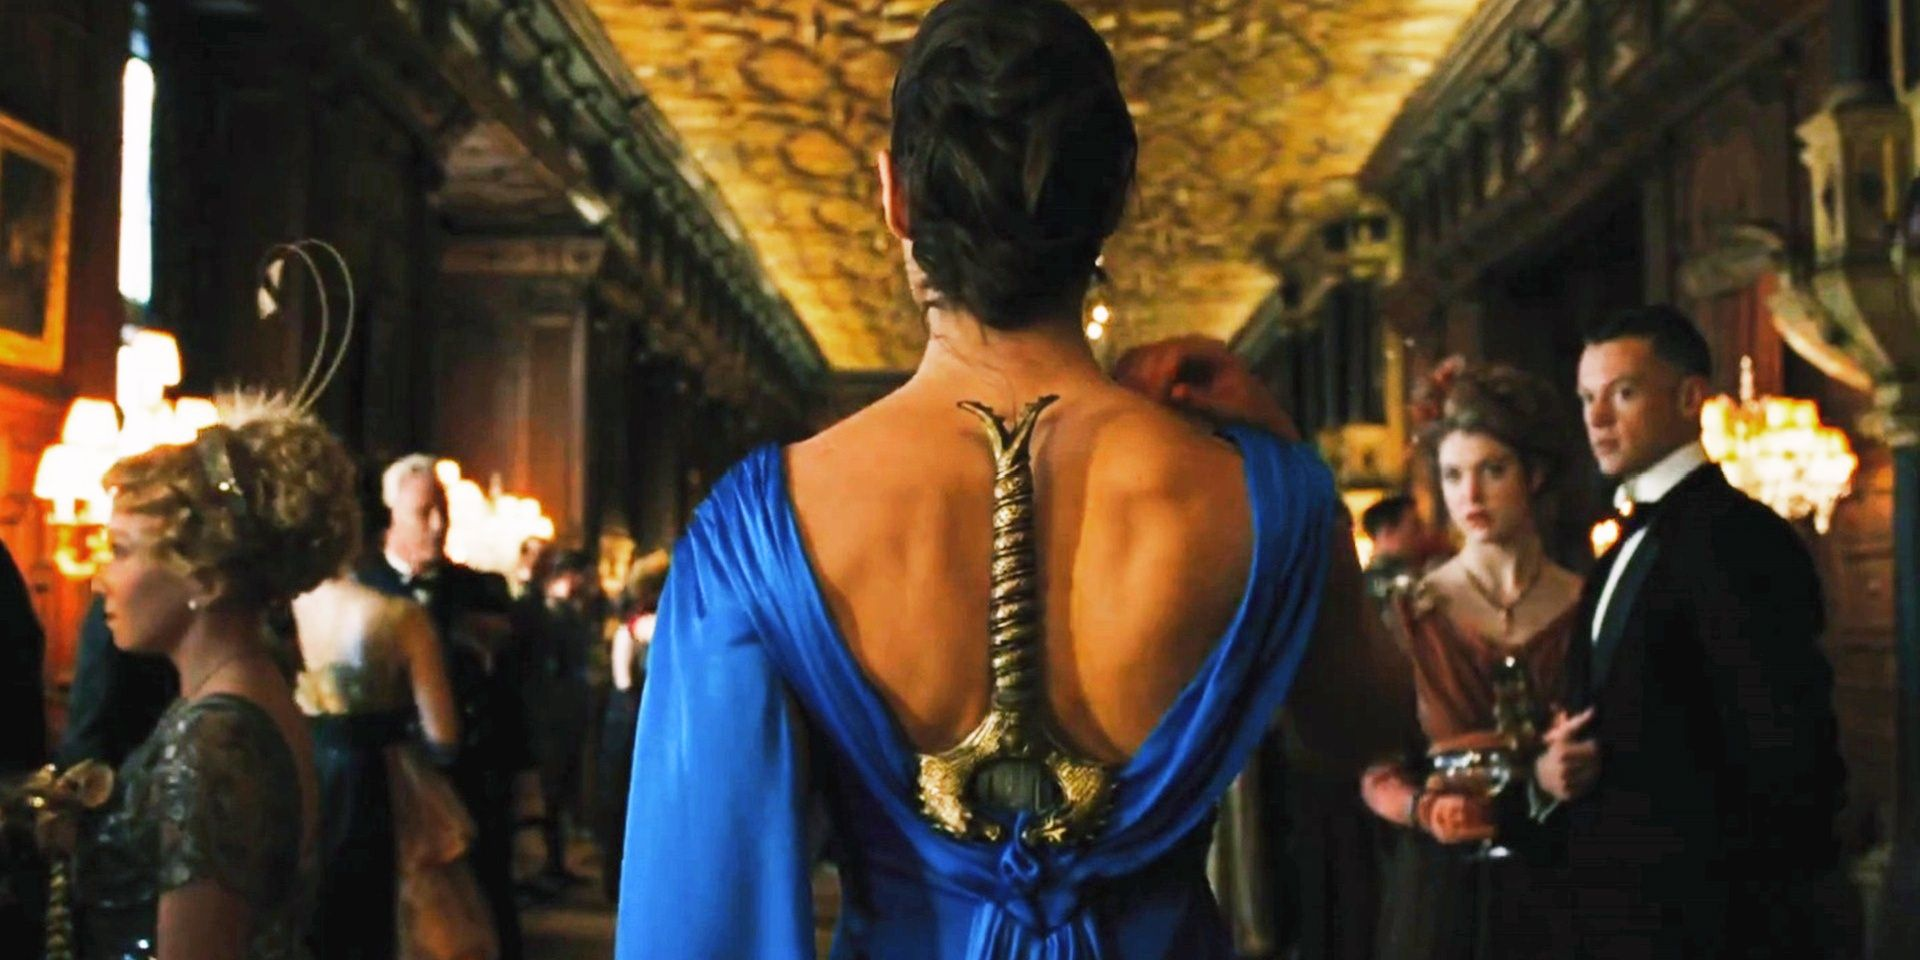 wonder-woman-patty-jenkins-sword-blue-dress-header